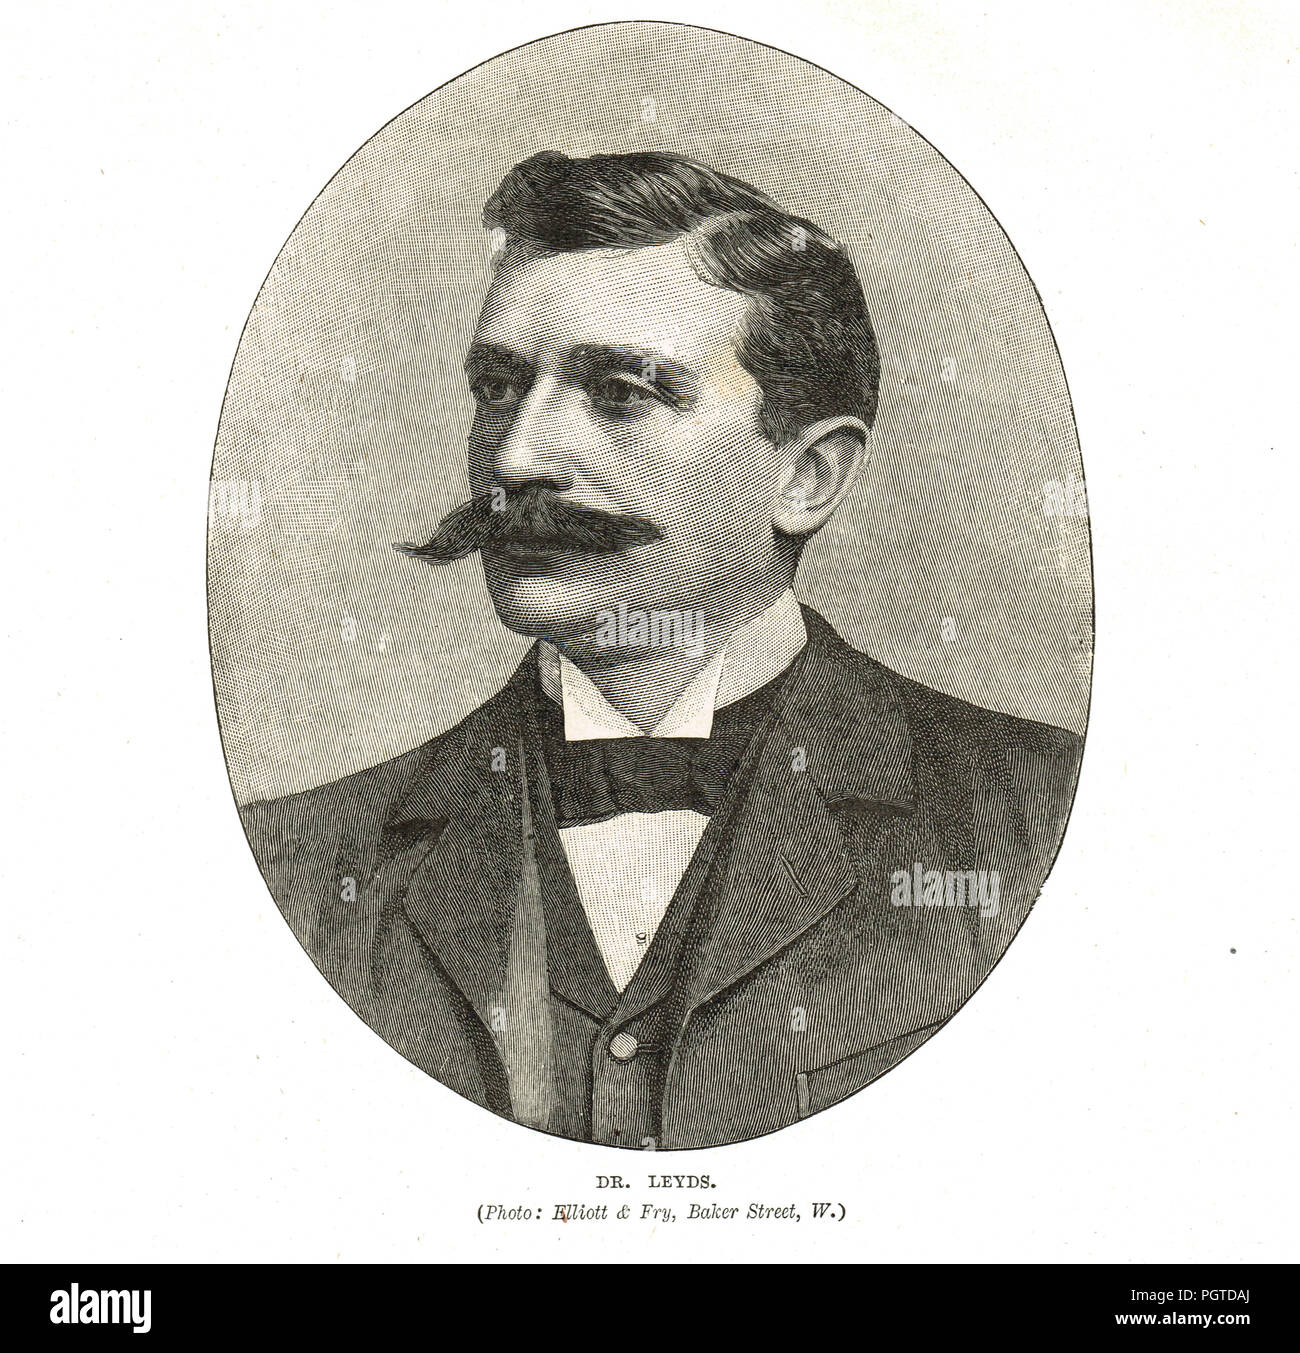 Dr Willem Johannes Leyds, Dutch lawyer and statesman, State Secretary of the South African Republic, during the South African War (Second Boer War) - Stock Image